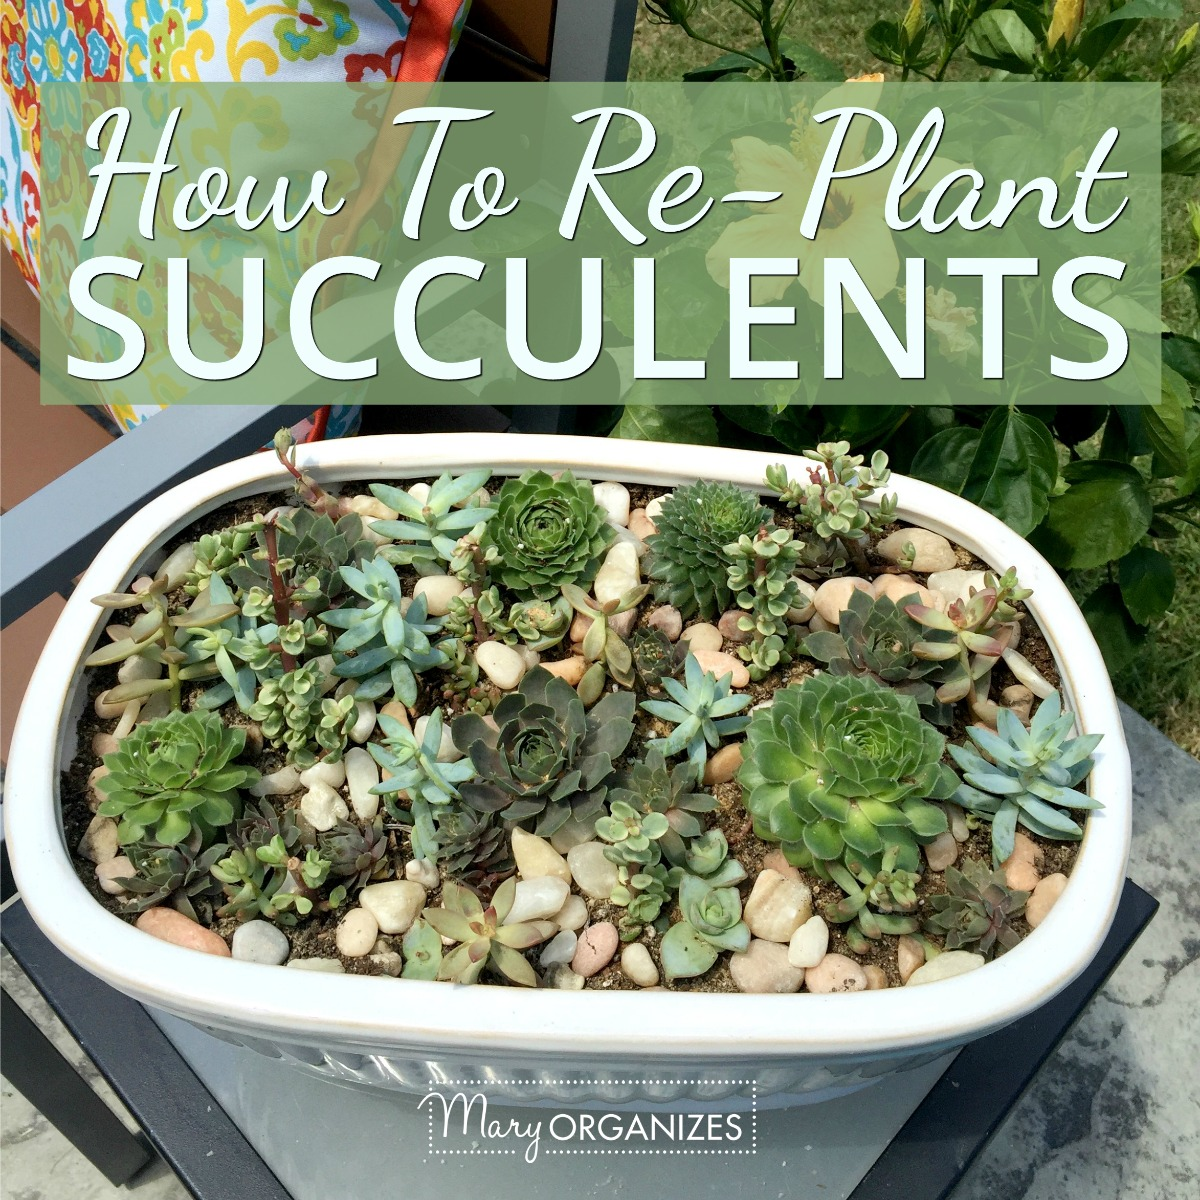 How To Re-Plant Succulents -s